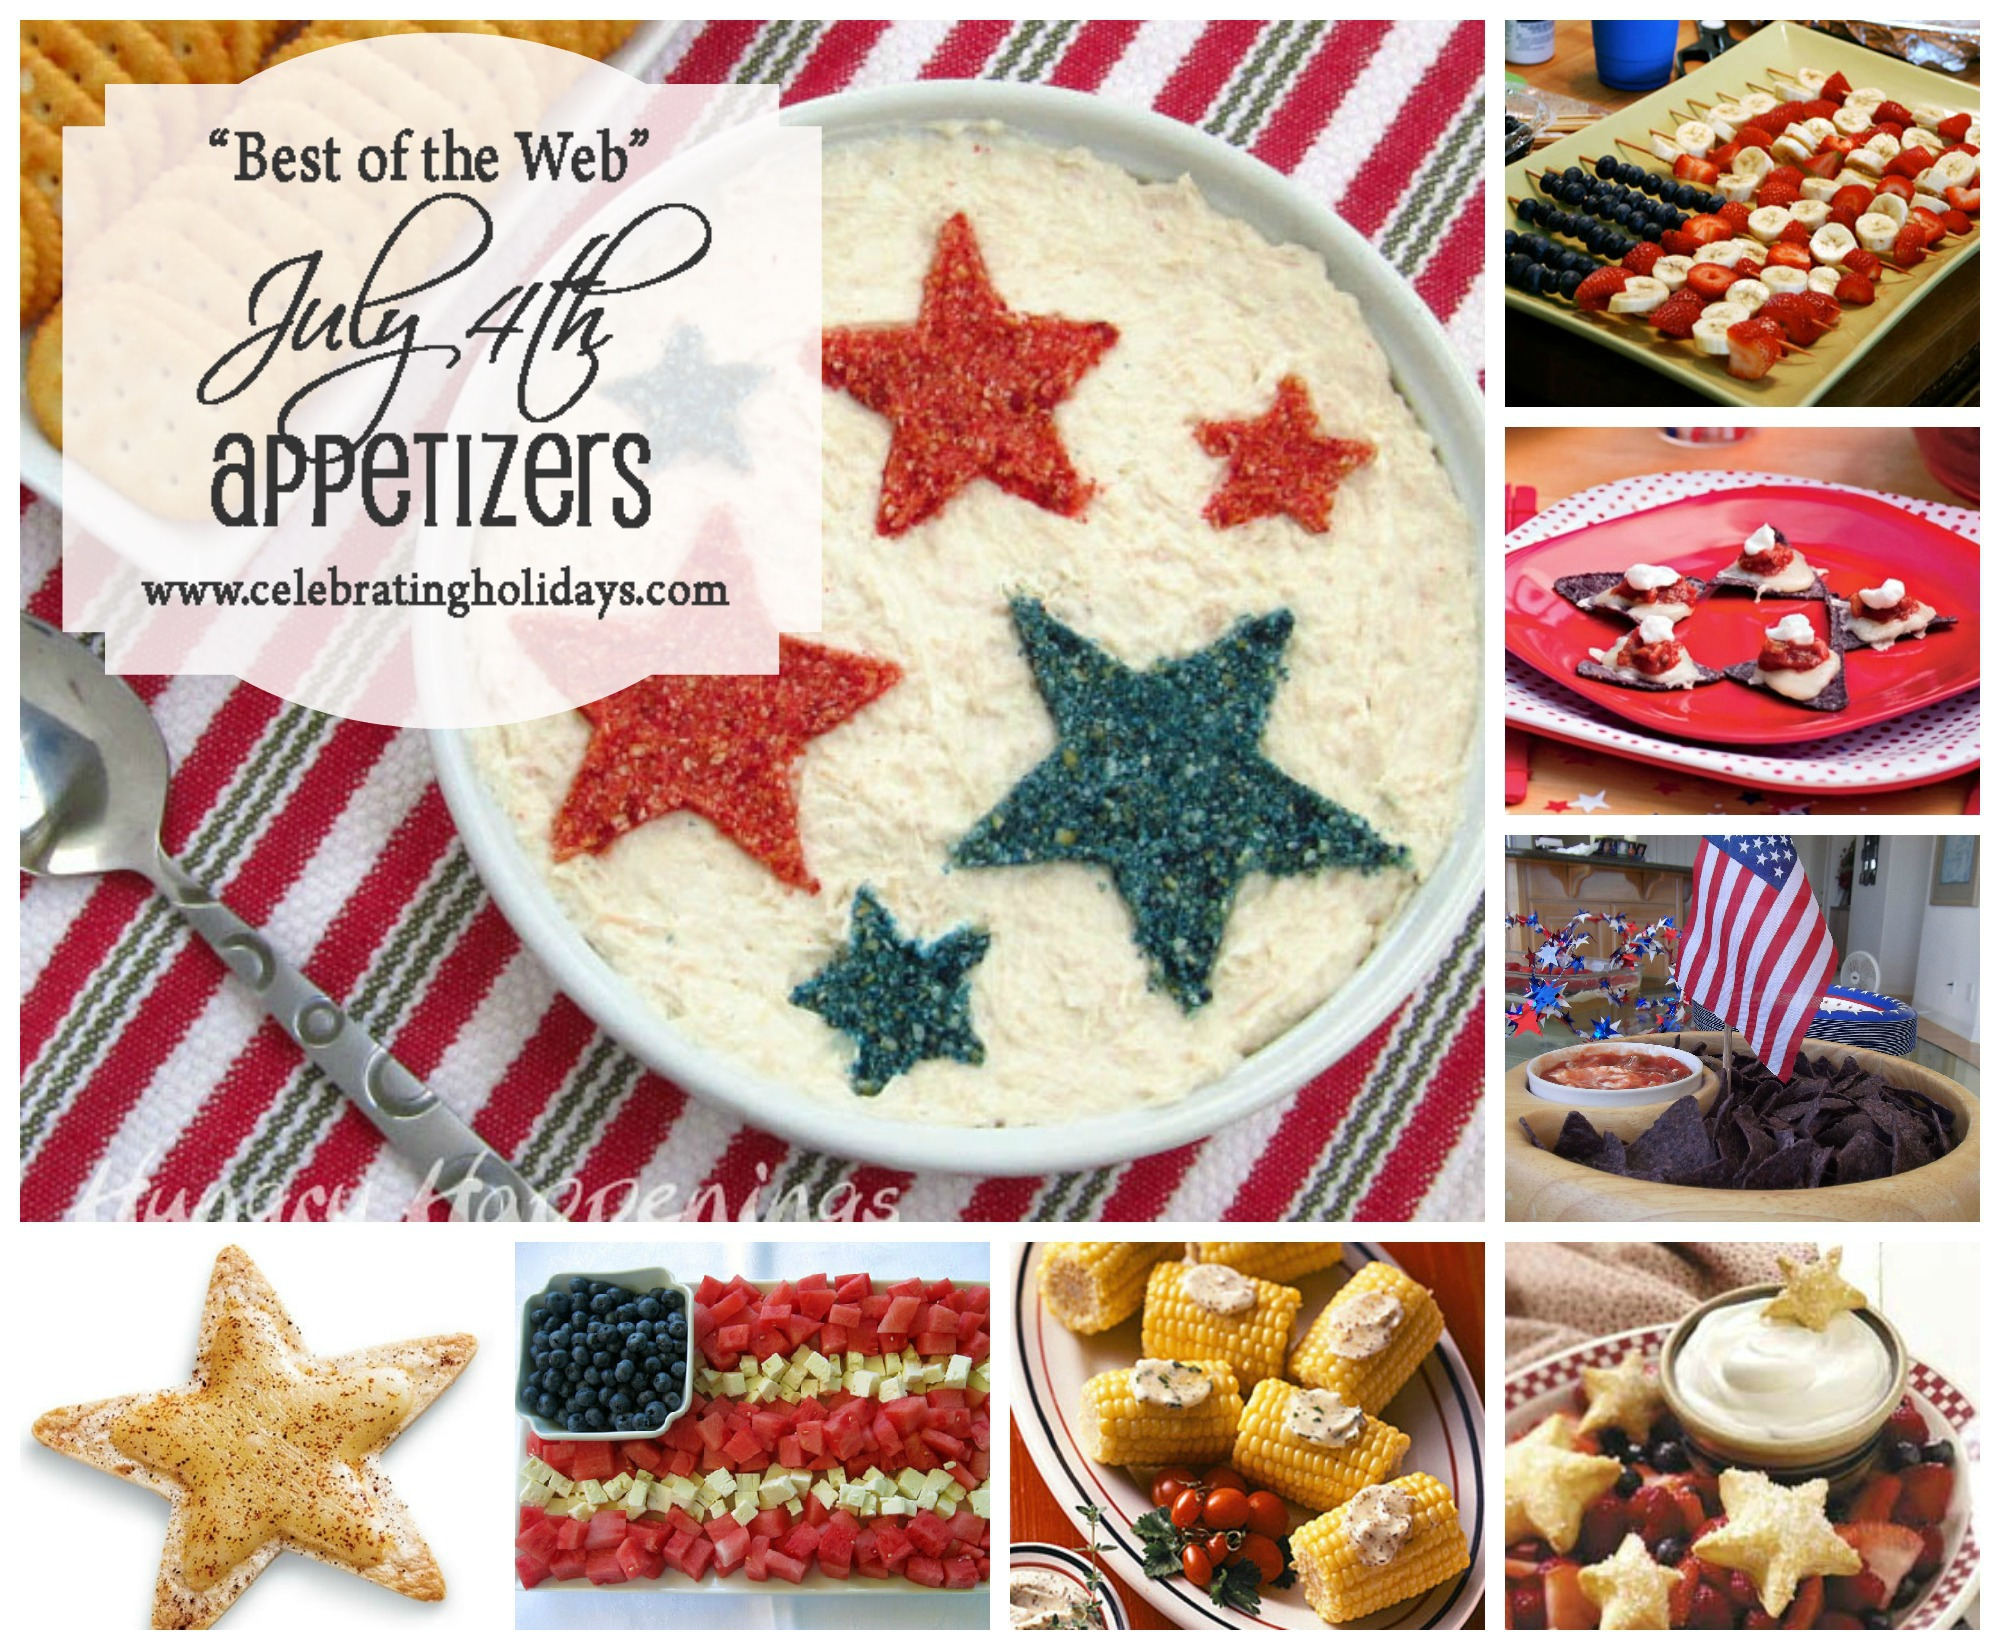 Best of the Web July 4th Appetizer Ideas